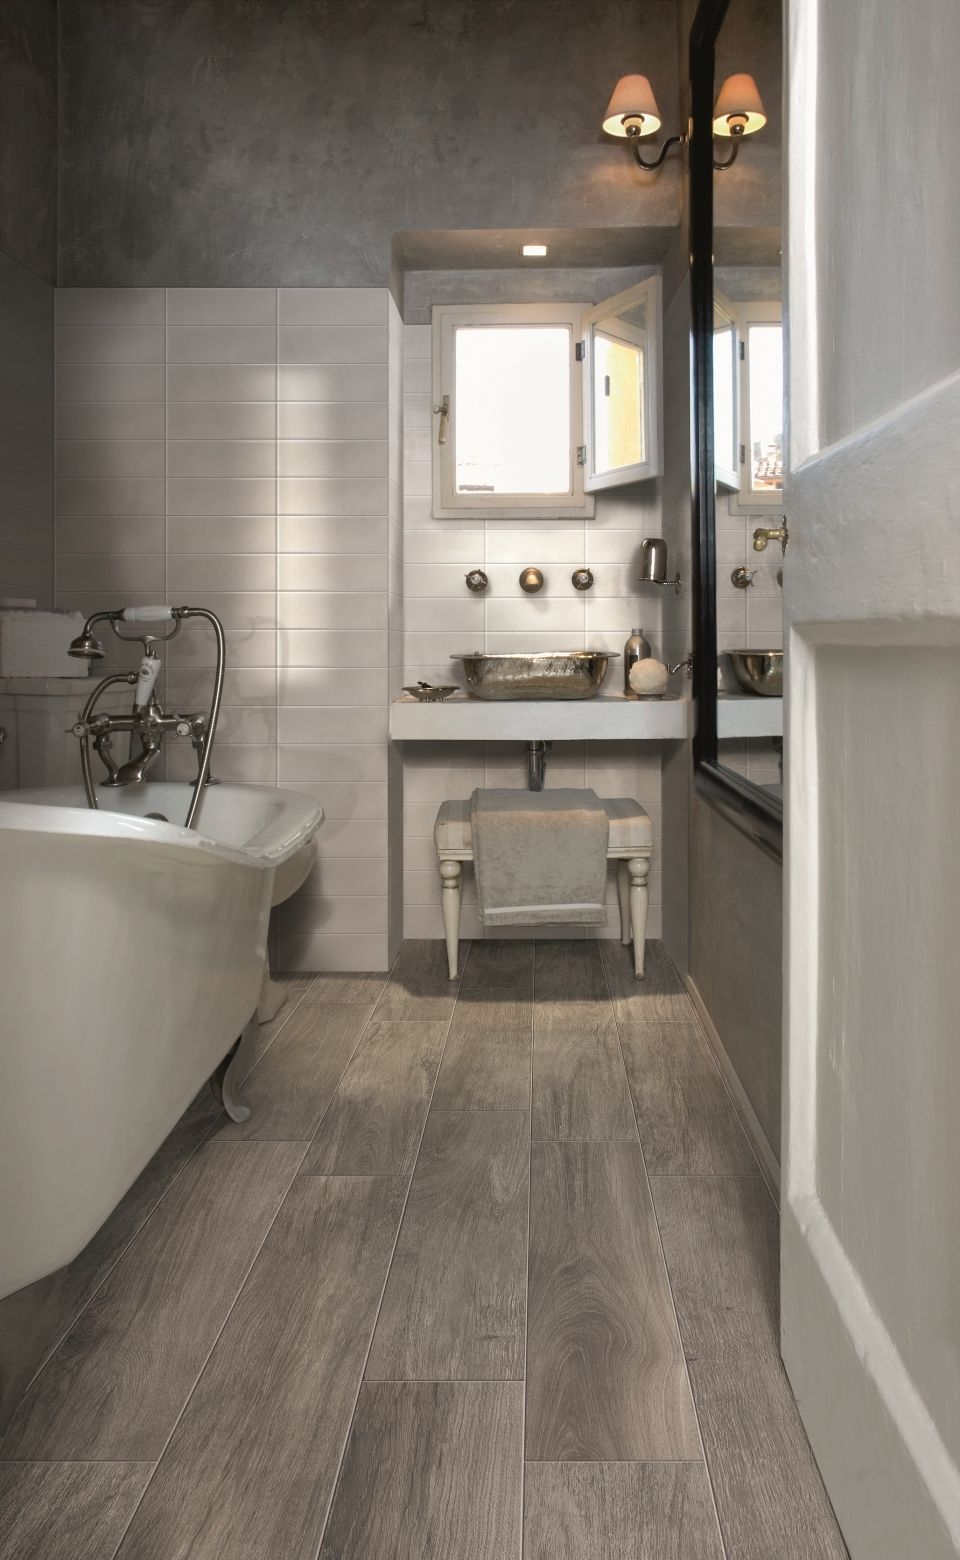 Take the floor wood wood porcelain tile and porcelain lux wood wood look porcelain tile architectural ceramics dailygadgetfo Choice Image